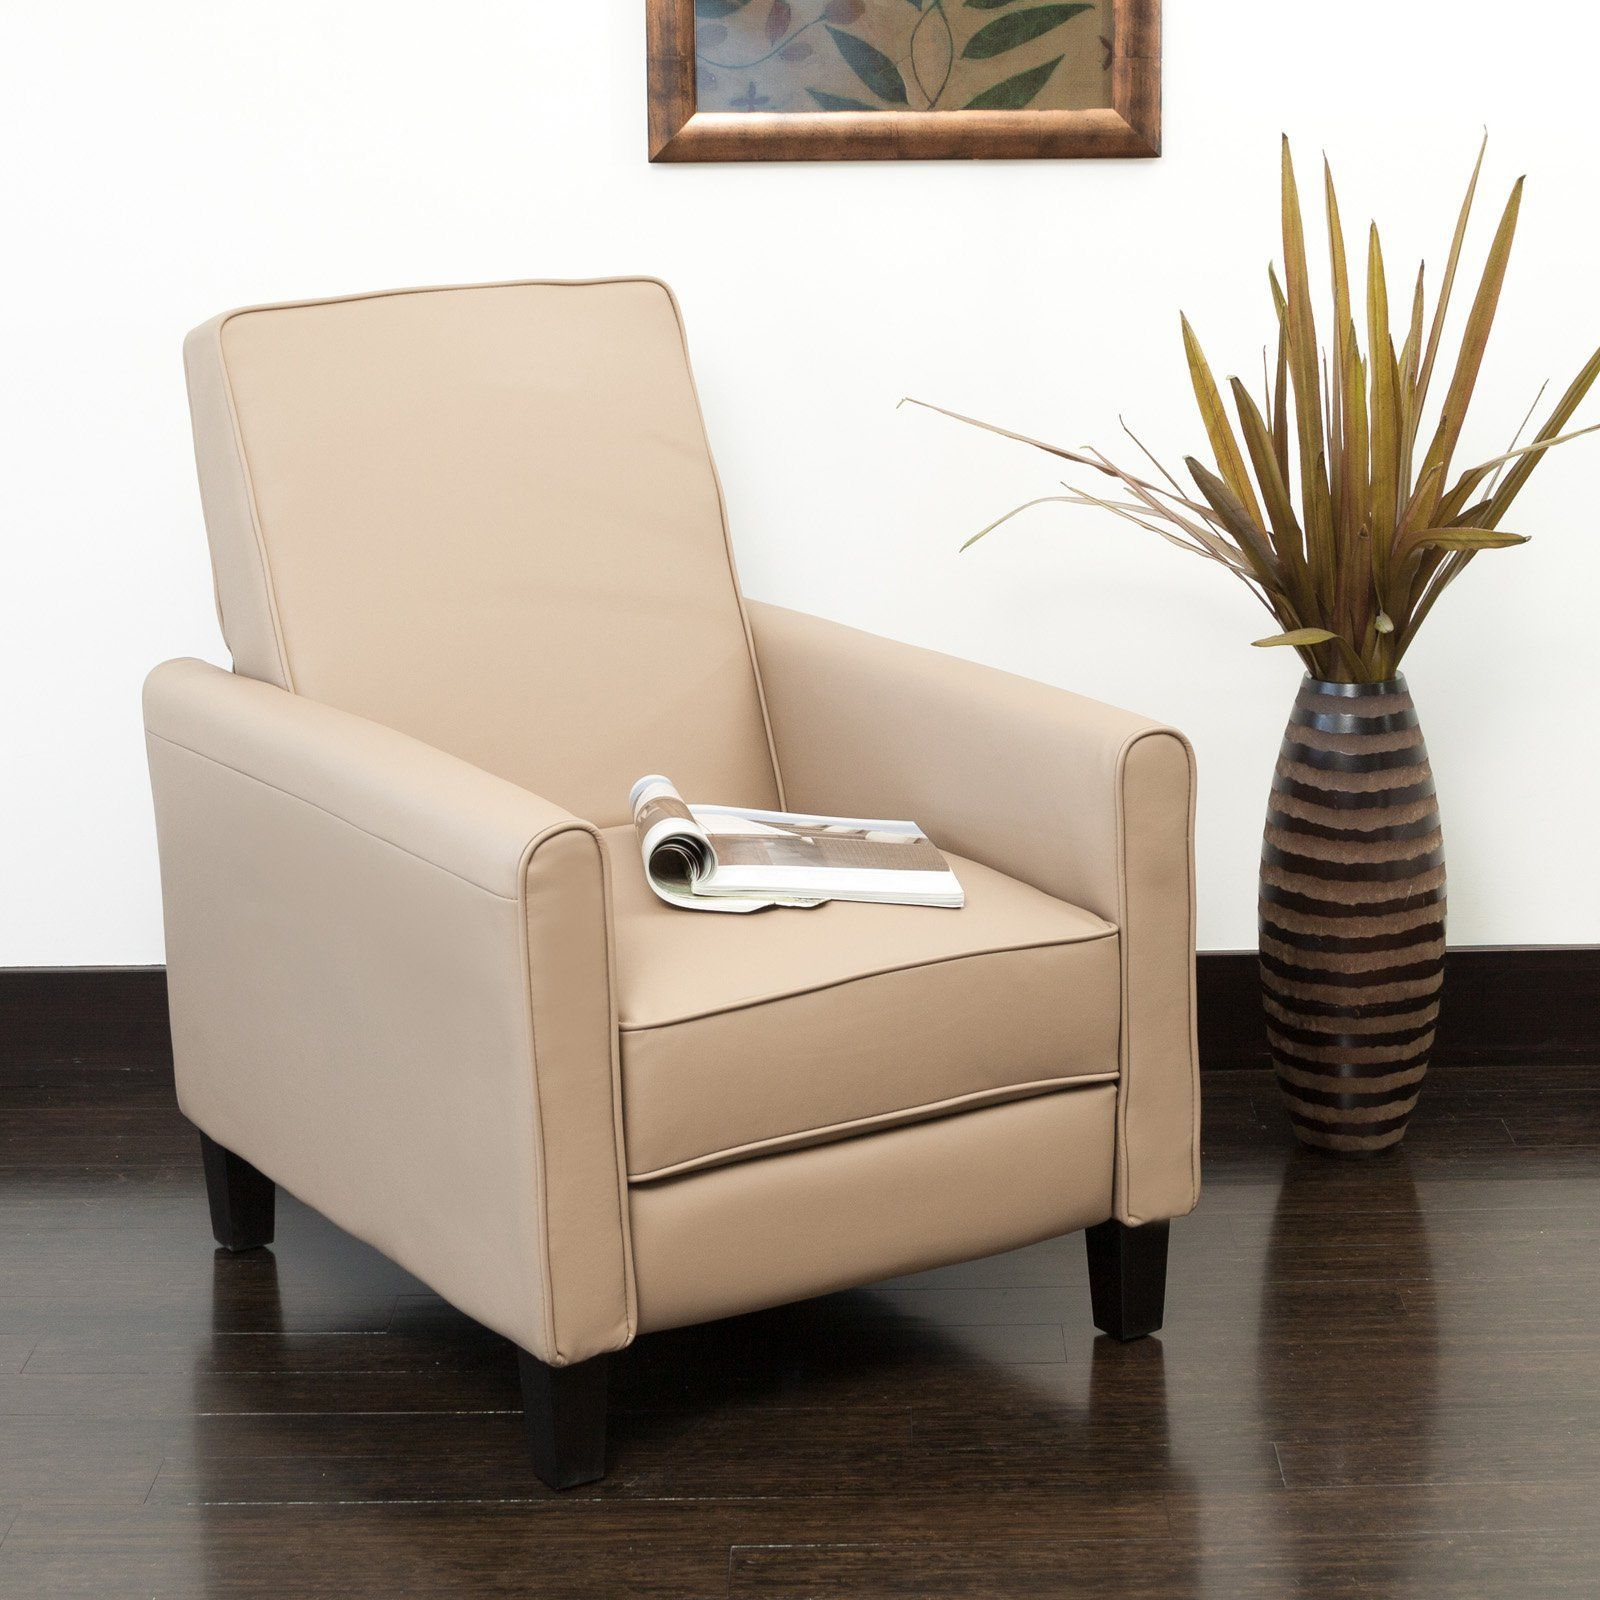 best living room chair%0A Best Selling Home Decor Furniture LLC Lana Camel PU Leather Recliner       Hayneedle